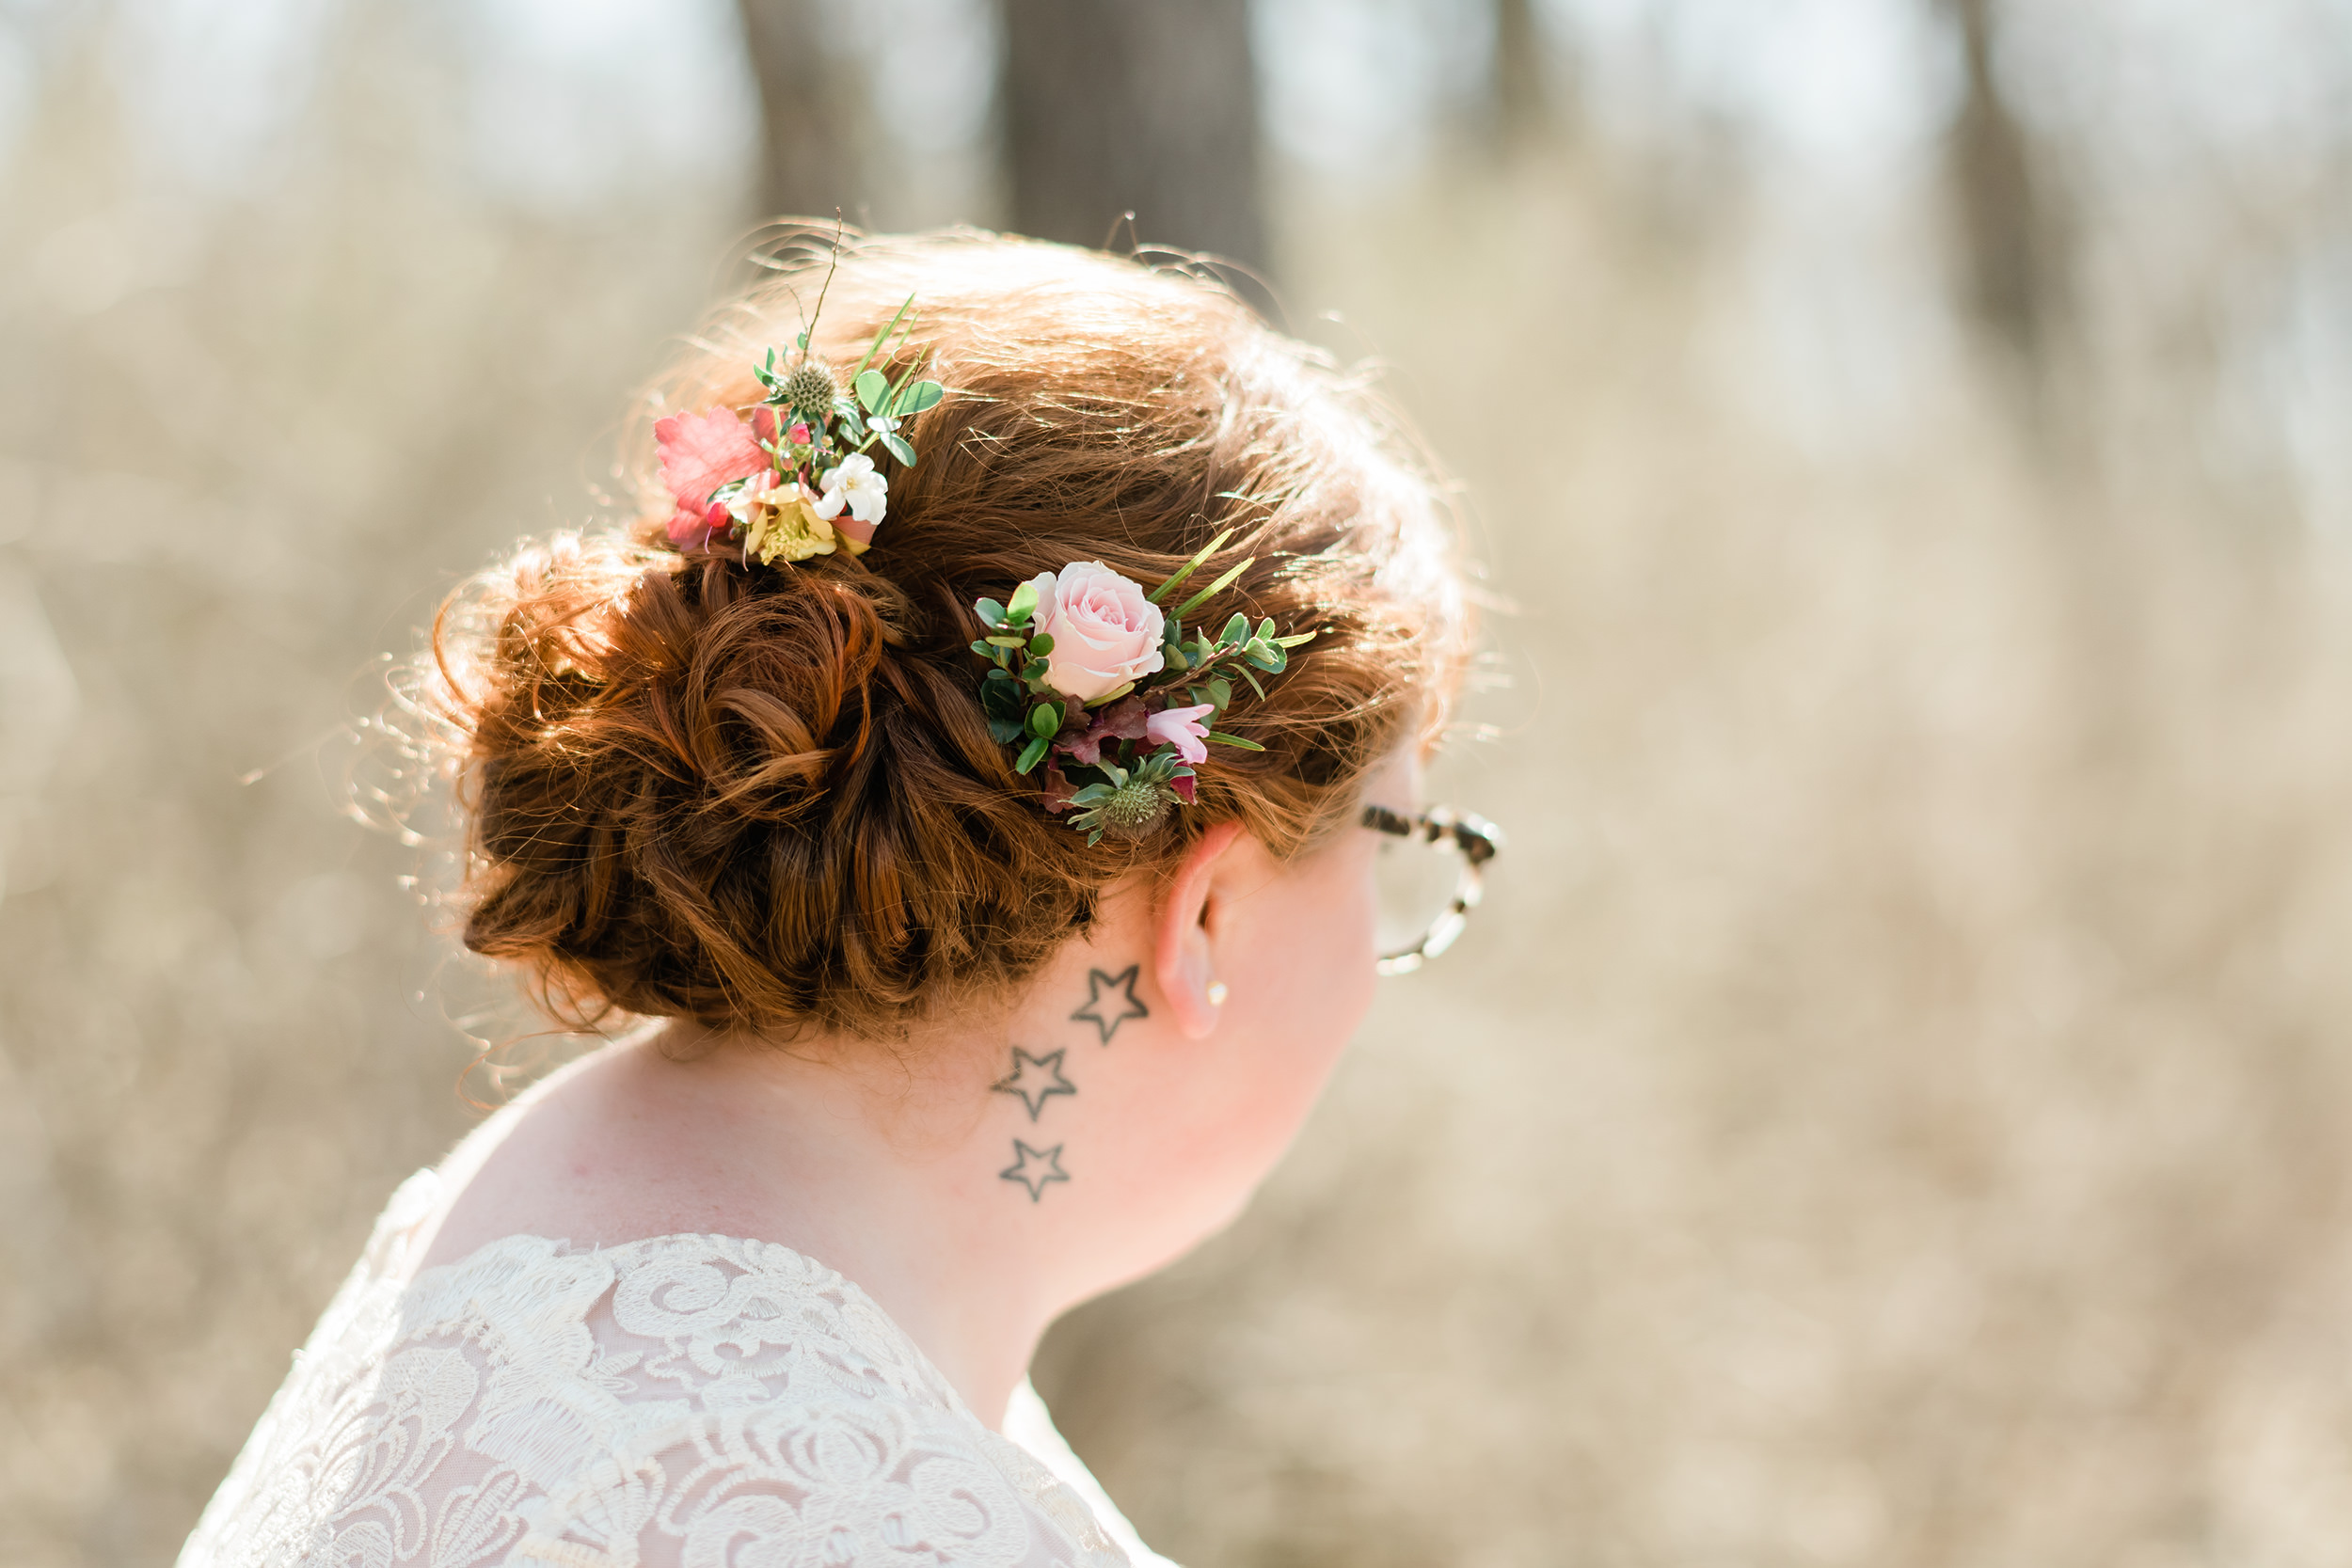 Floral hairpiece in bride's hair